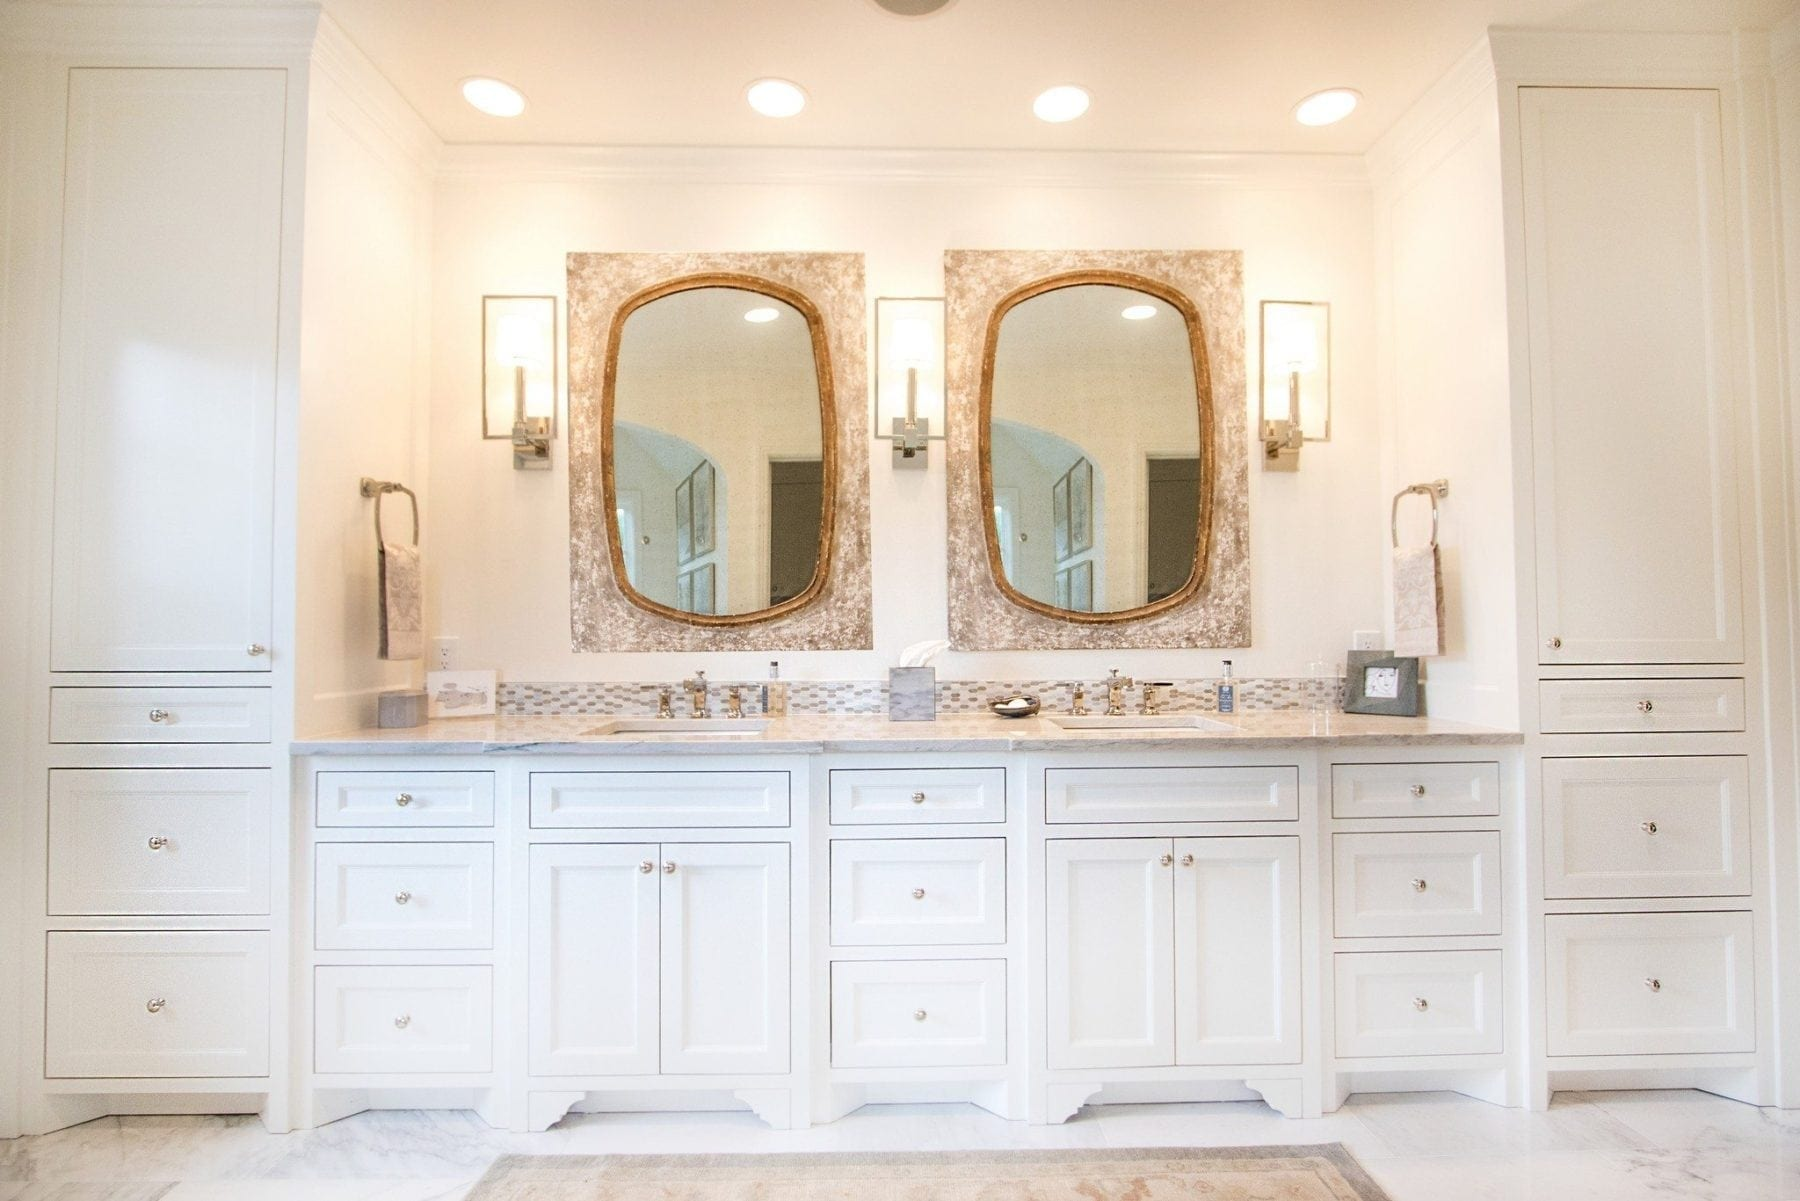 Dallas Kitchen Bathroom Remodeling Renowned Renovation - Dallas bathroom remodel